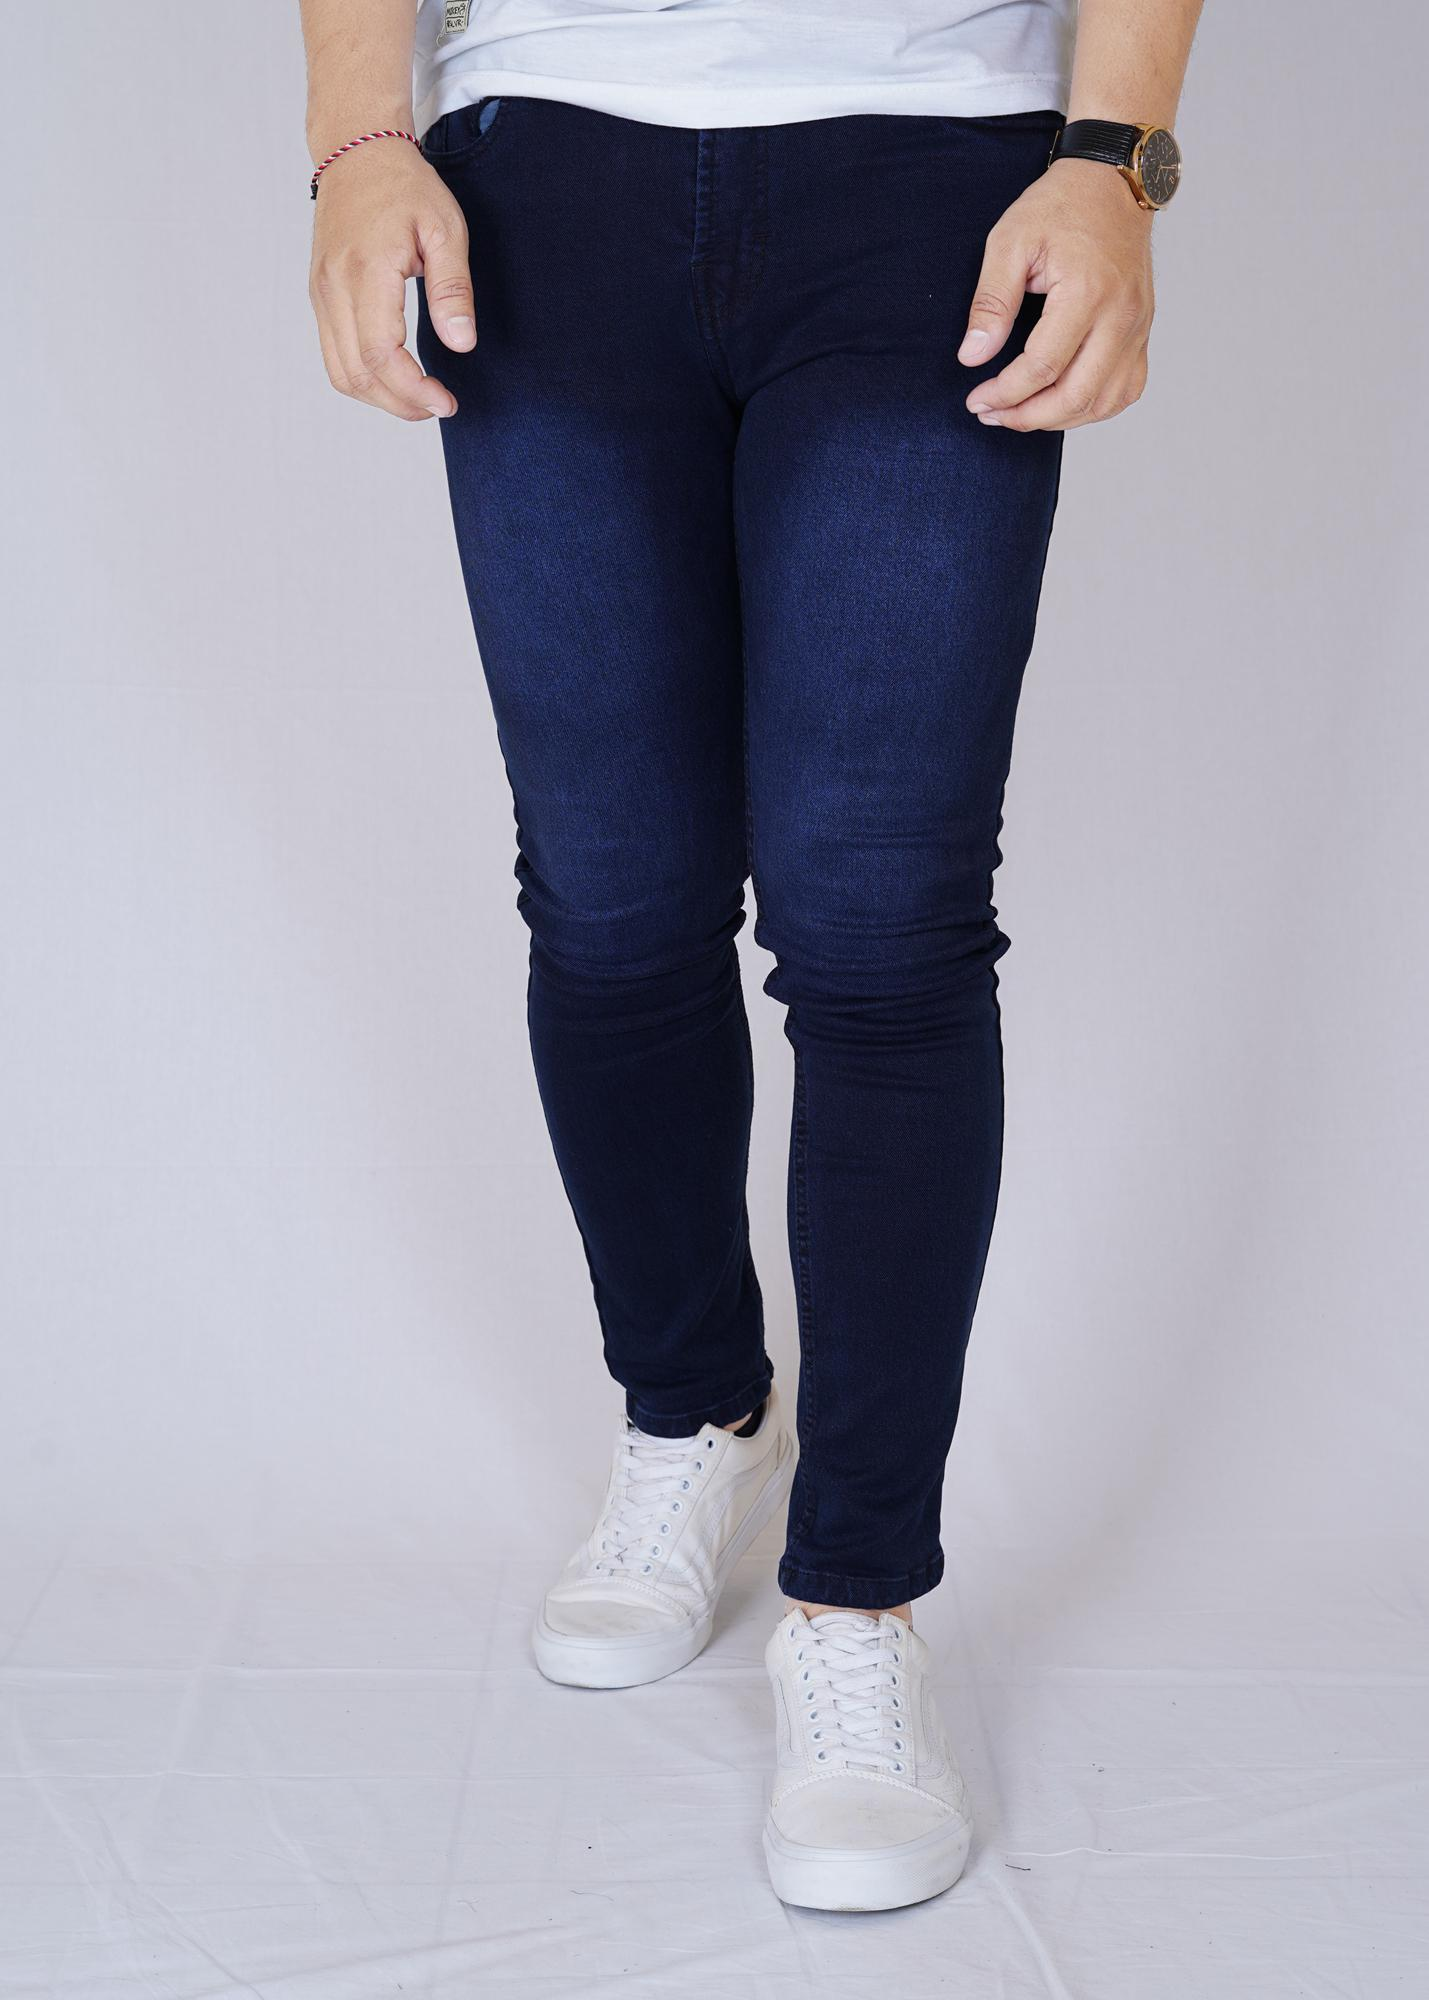 Zoeystore1 6416 Celena Jeans Panjang Pria Celana Jeans Skinny Cowok Washing Blue Cut Rips Celana Jeans